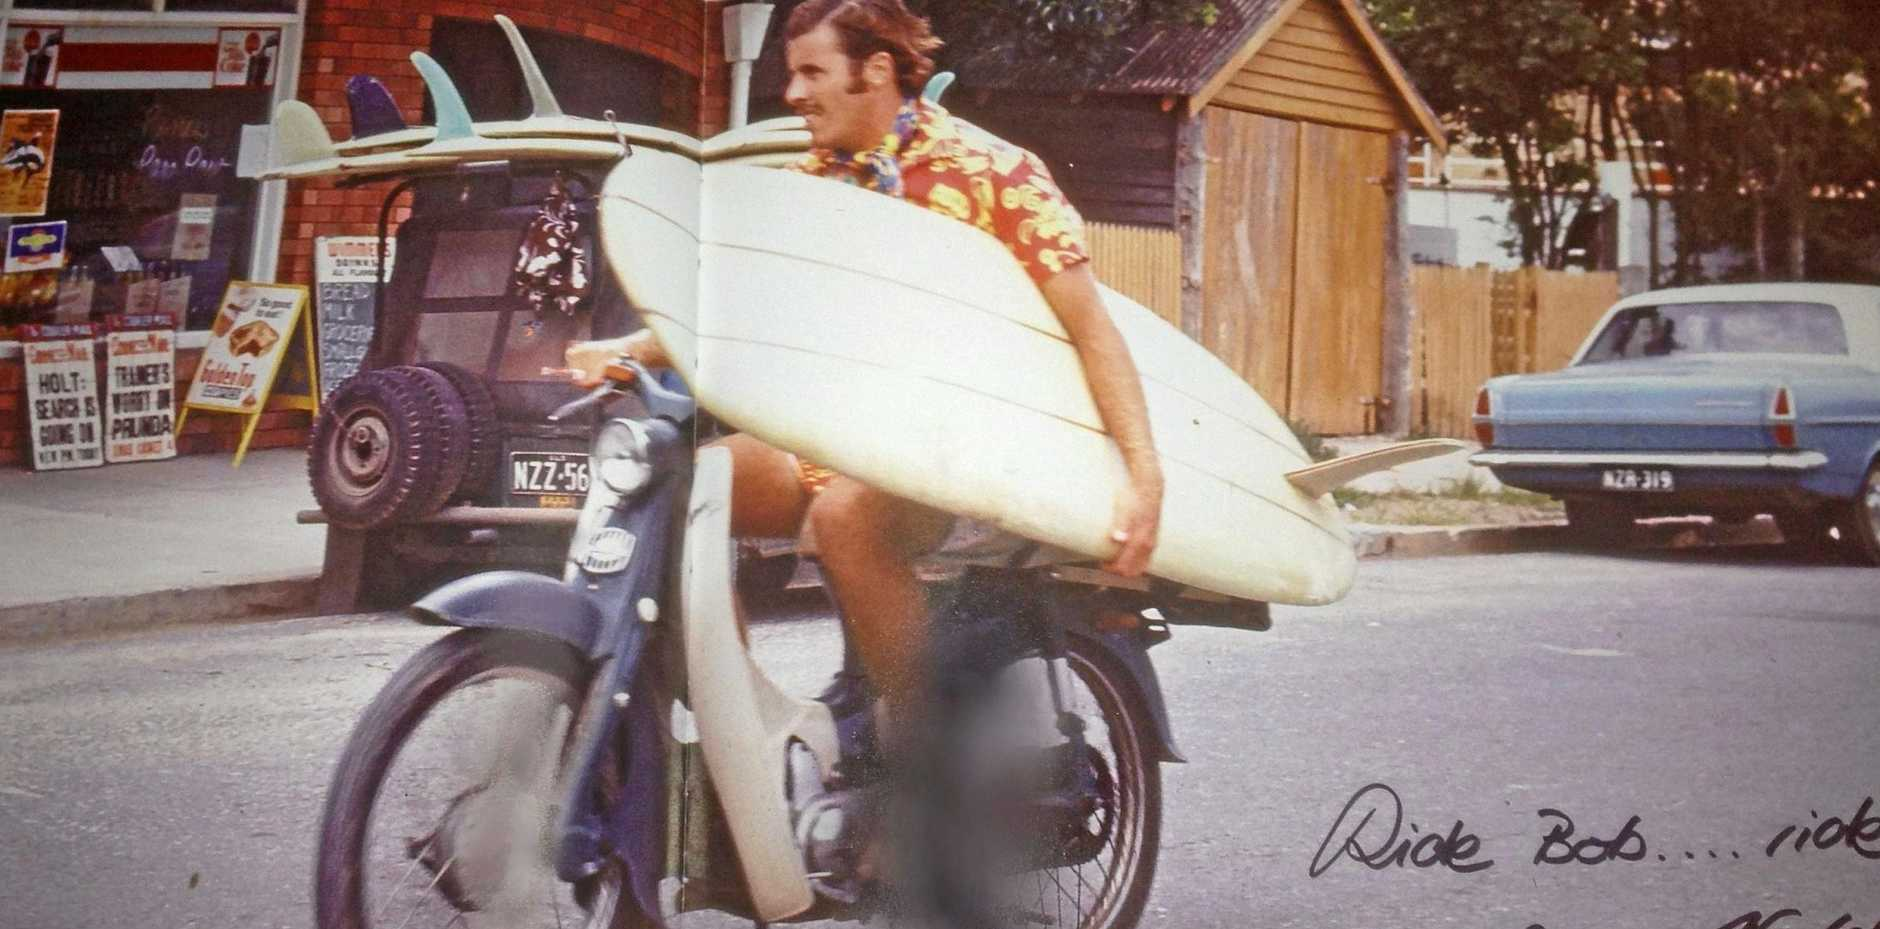 Bobby Aitken, pictured here on Hastings St in 1967, has ridden the wave of Noosa's surf culture.